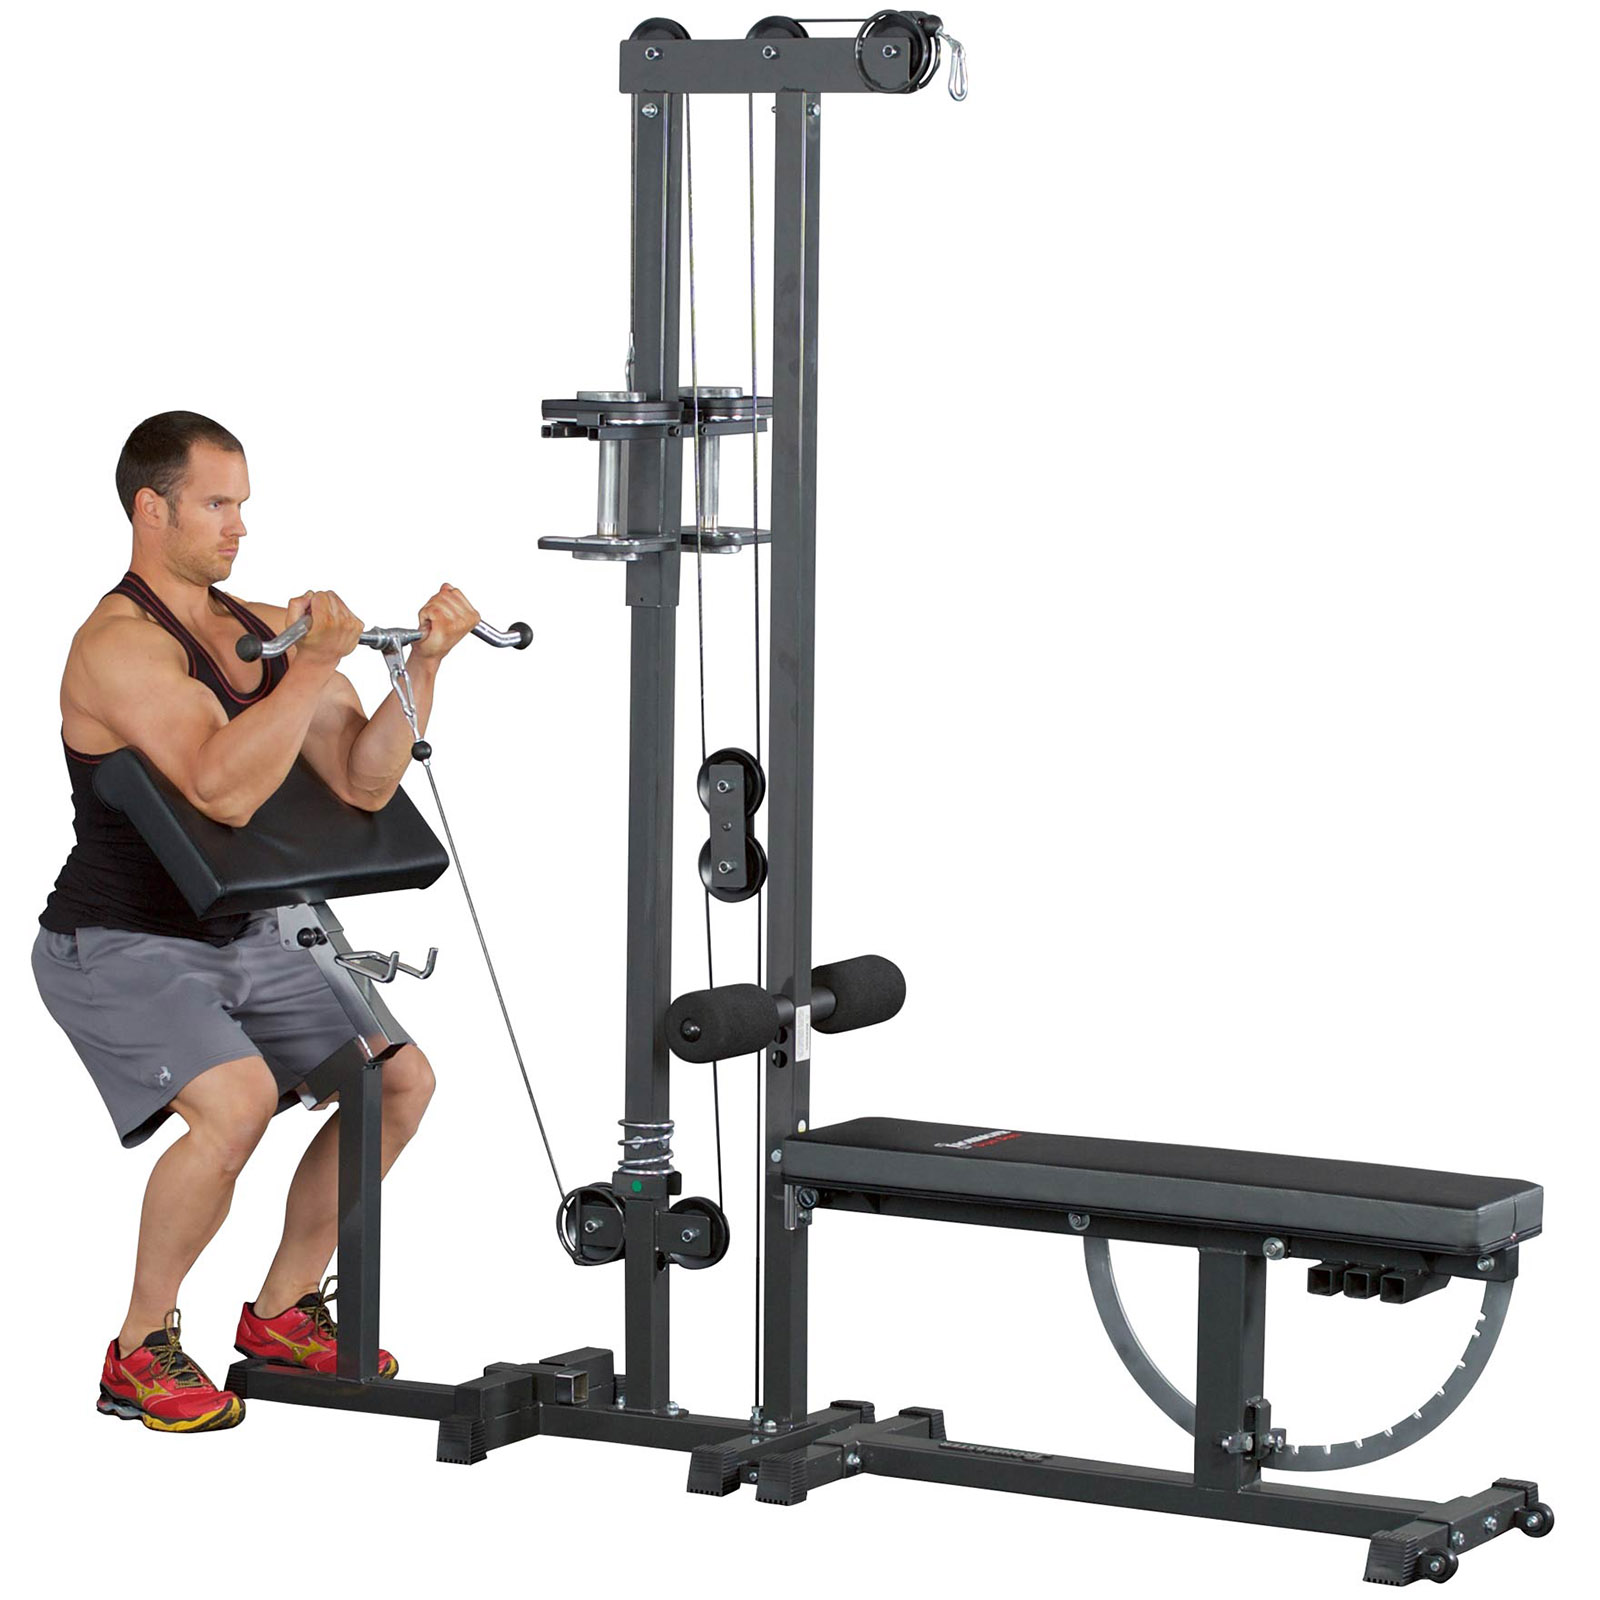 Preacher Curl Pad Extension Low Pulley